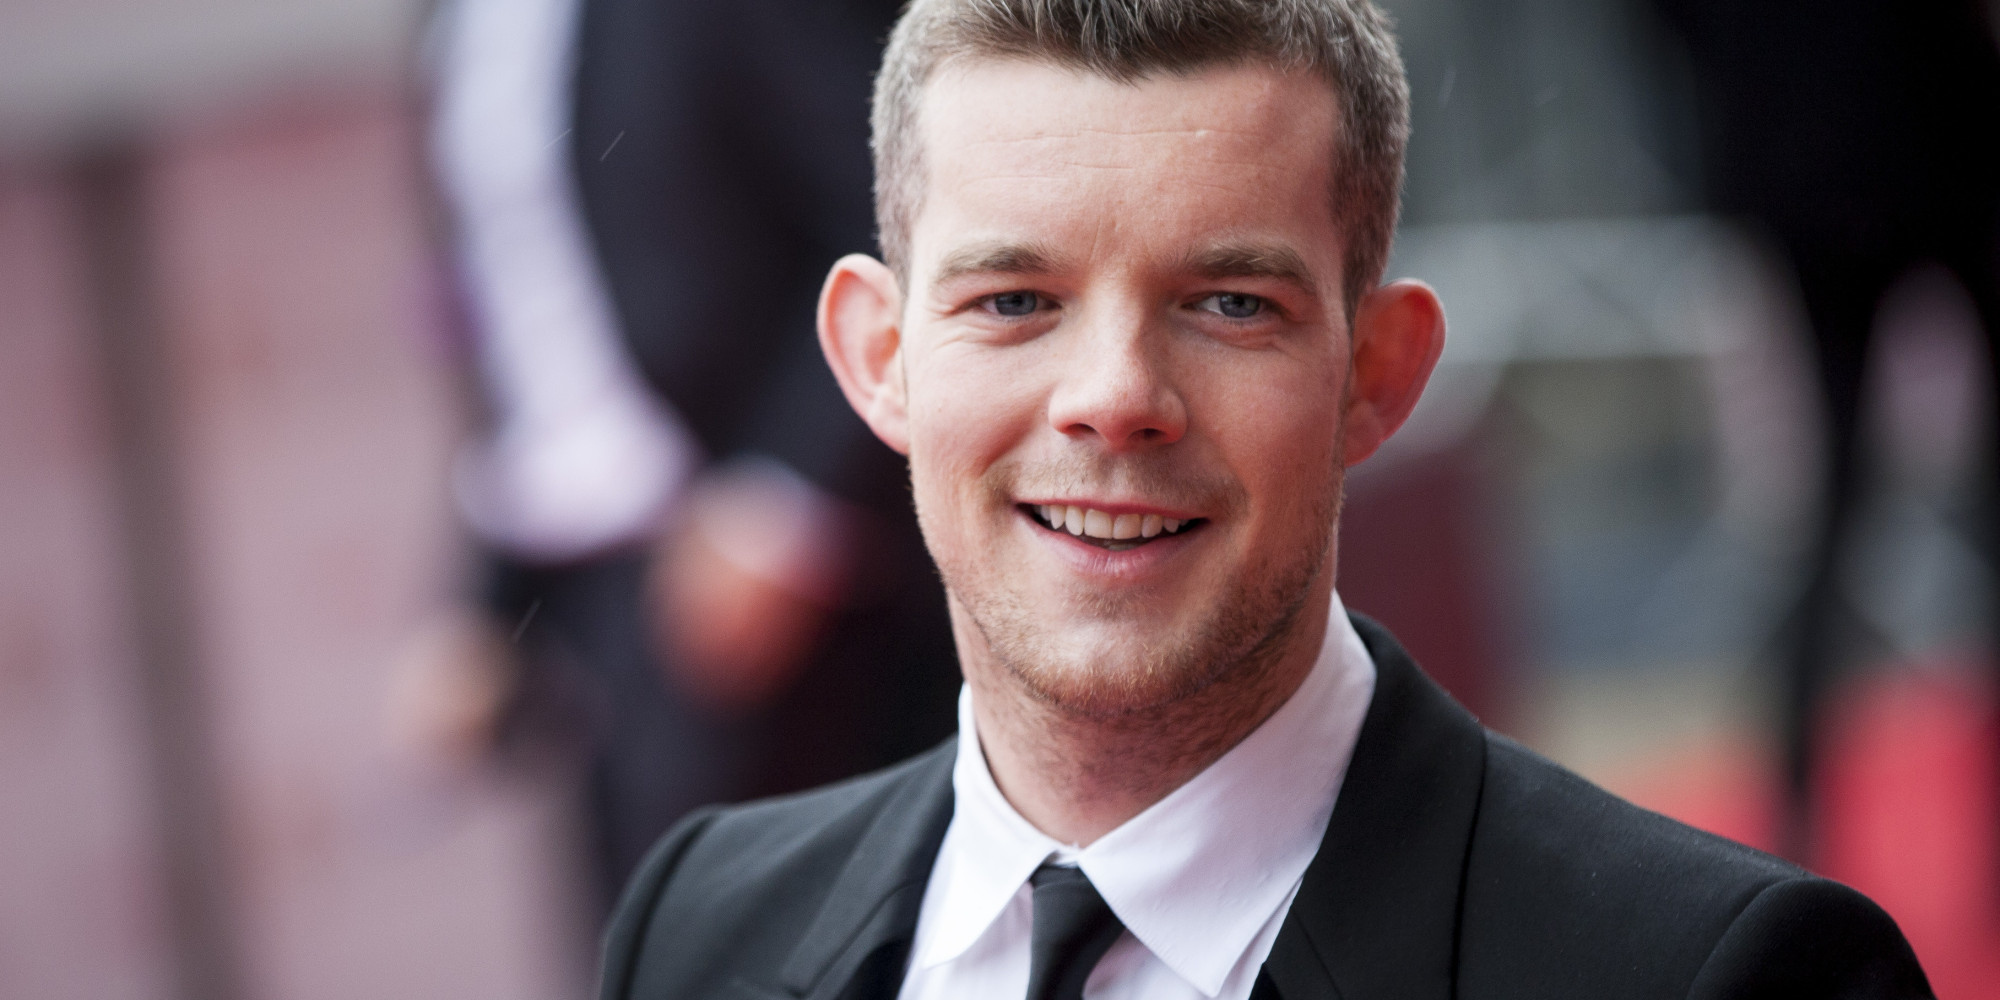 Russell Tovey earned a  million dollar salary, leaving the net worth at 4.1 million in 2017